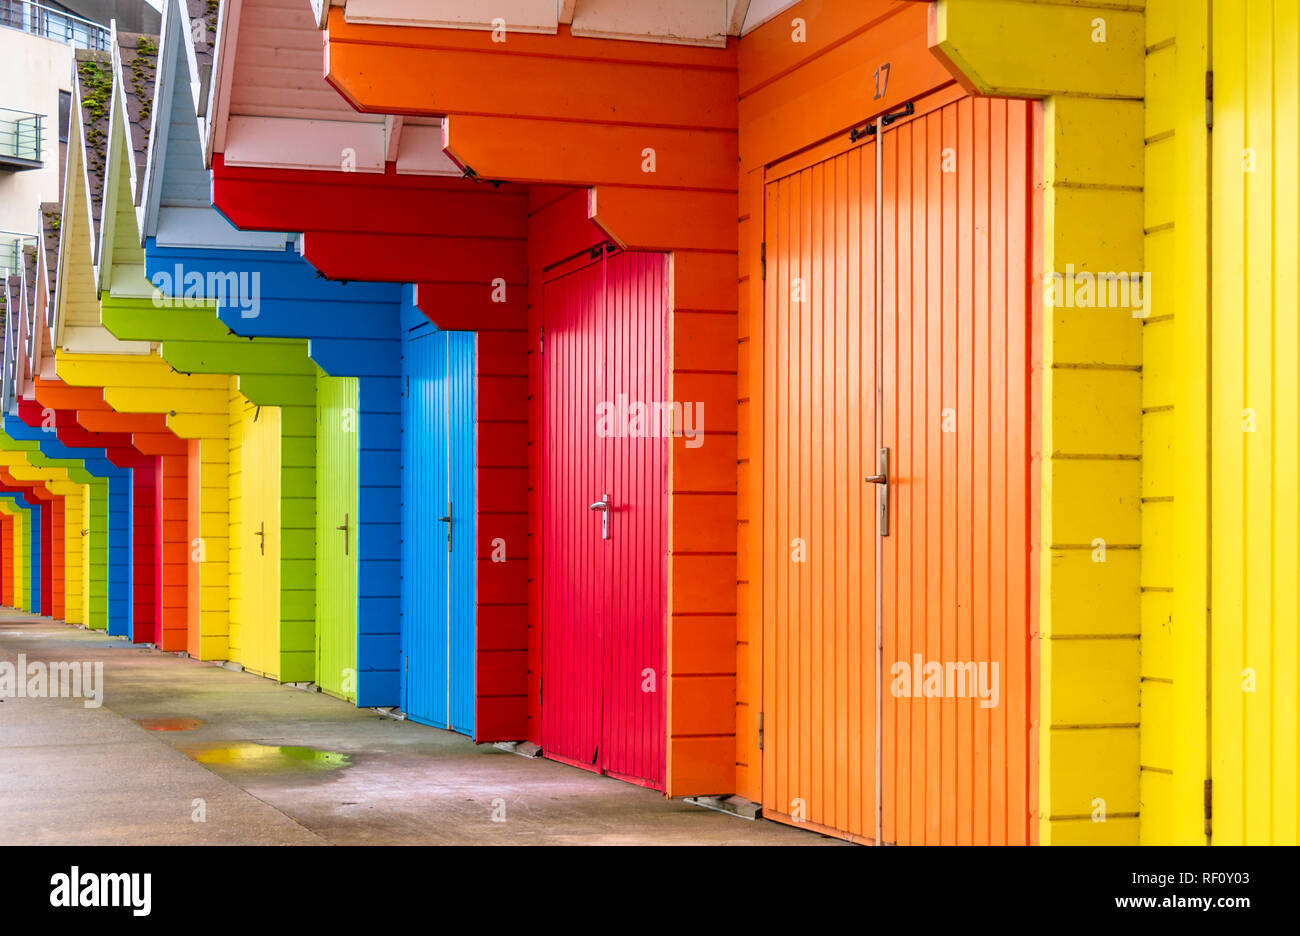 A line of coloured beach huts. A building with a balcony lies beyond and there is a puddle on the concrete floor. - Stock Image